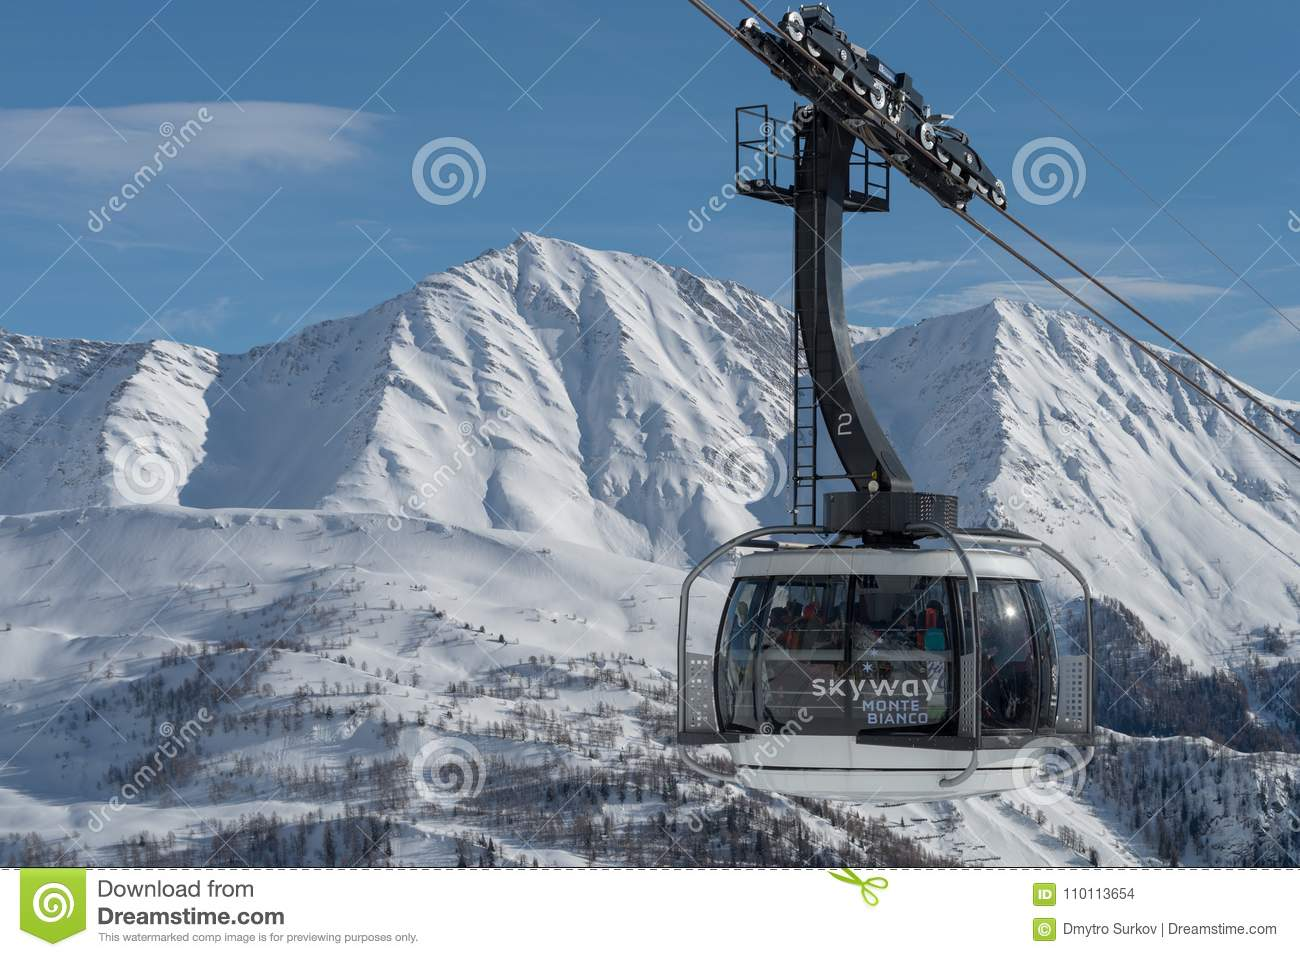 Skyway Monte Bianco, Courmayeur, Italien